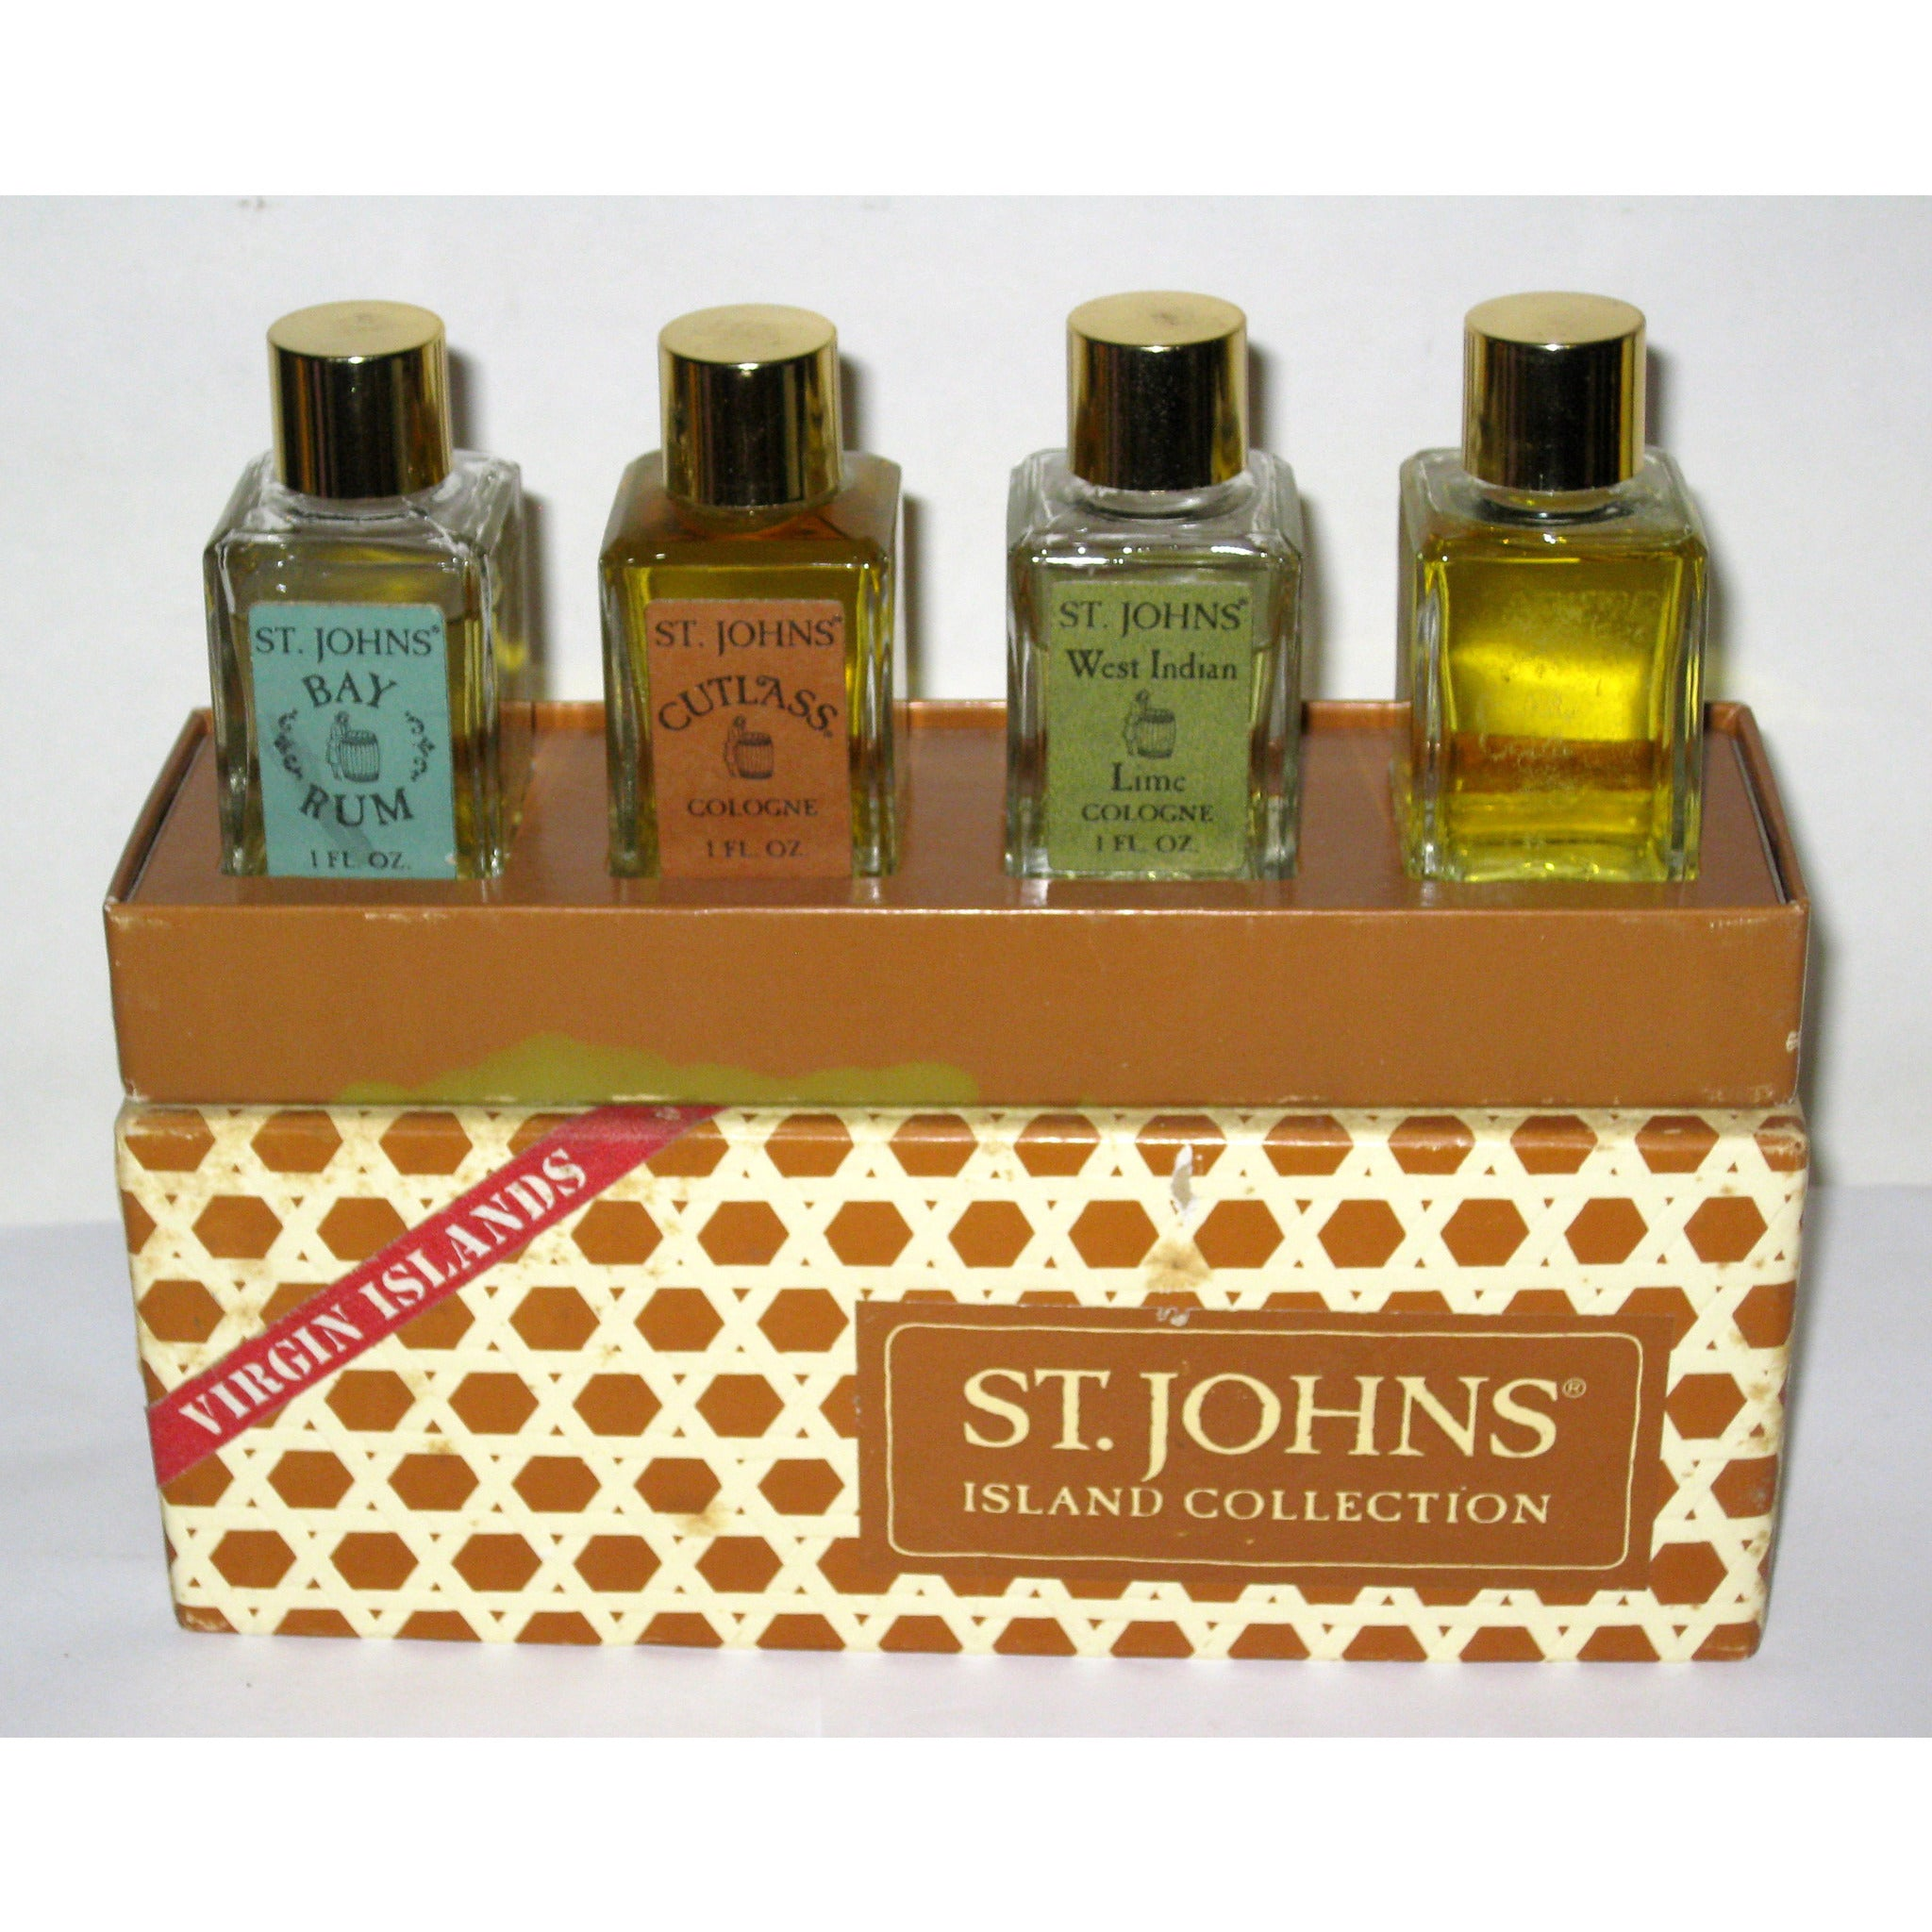 Vintage St. Johns Island Collection Cologne Set